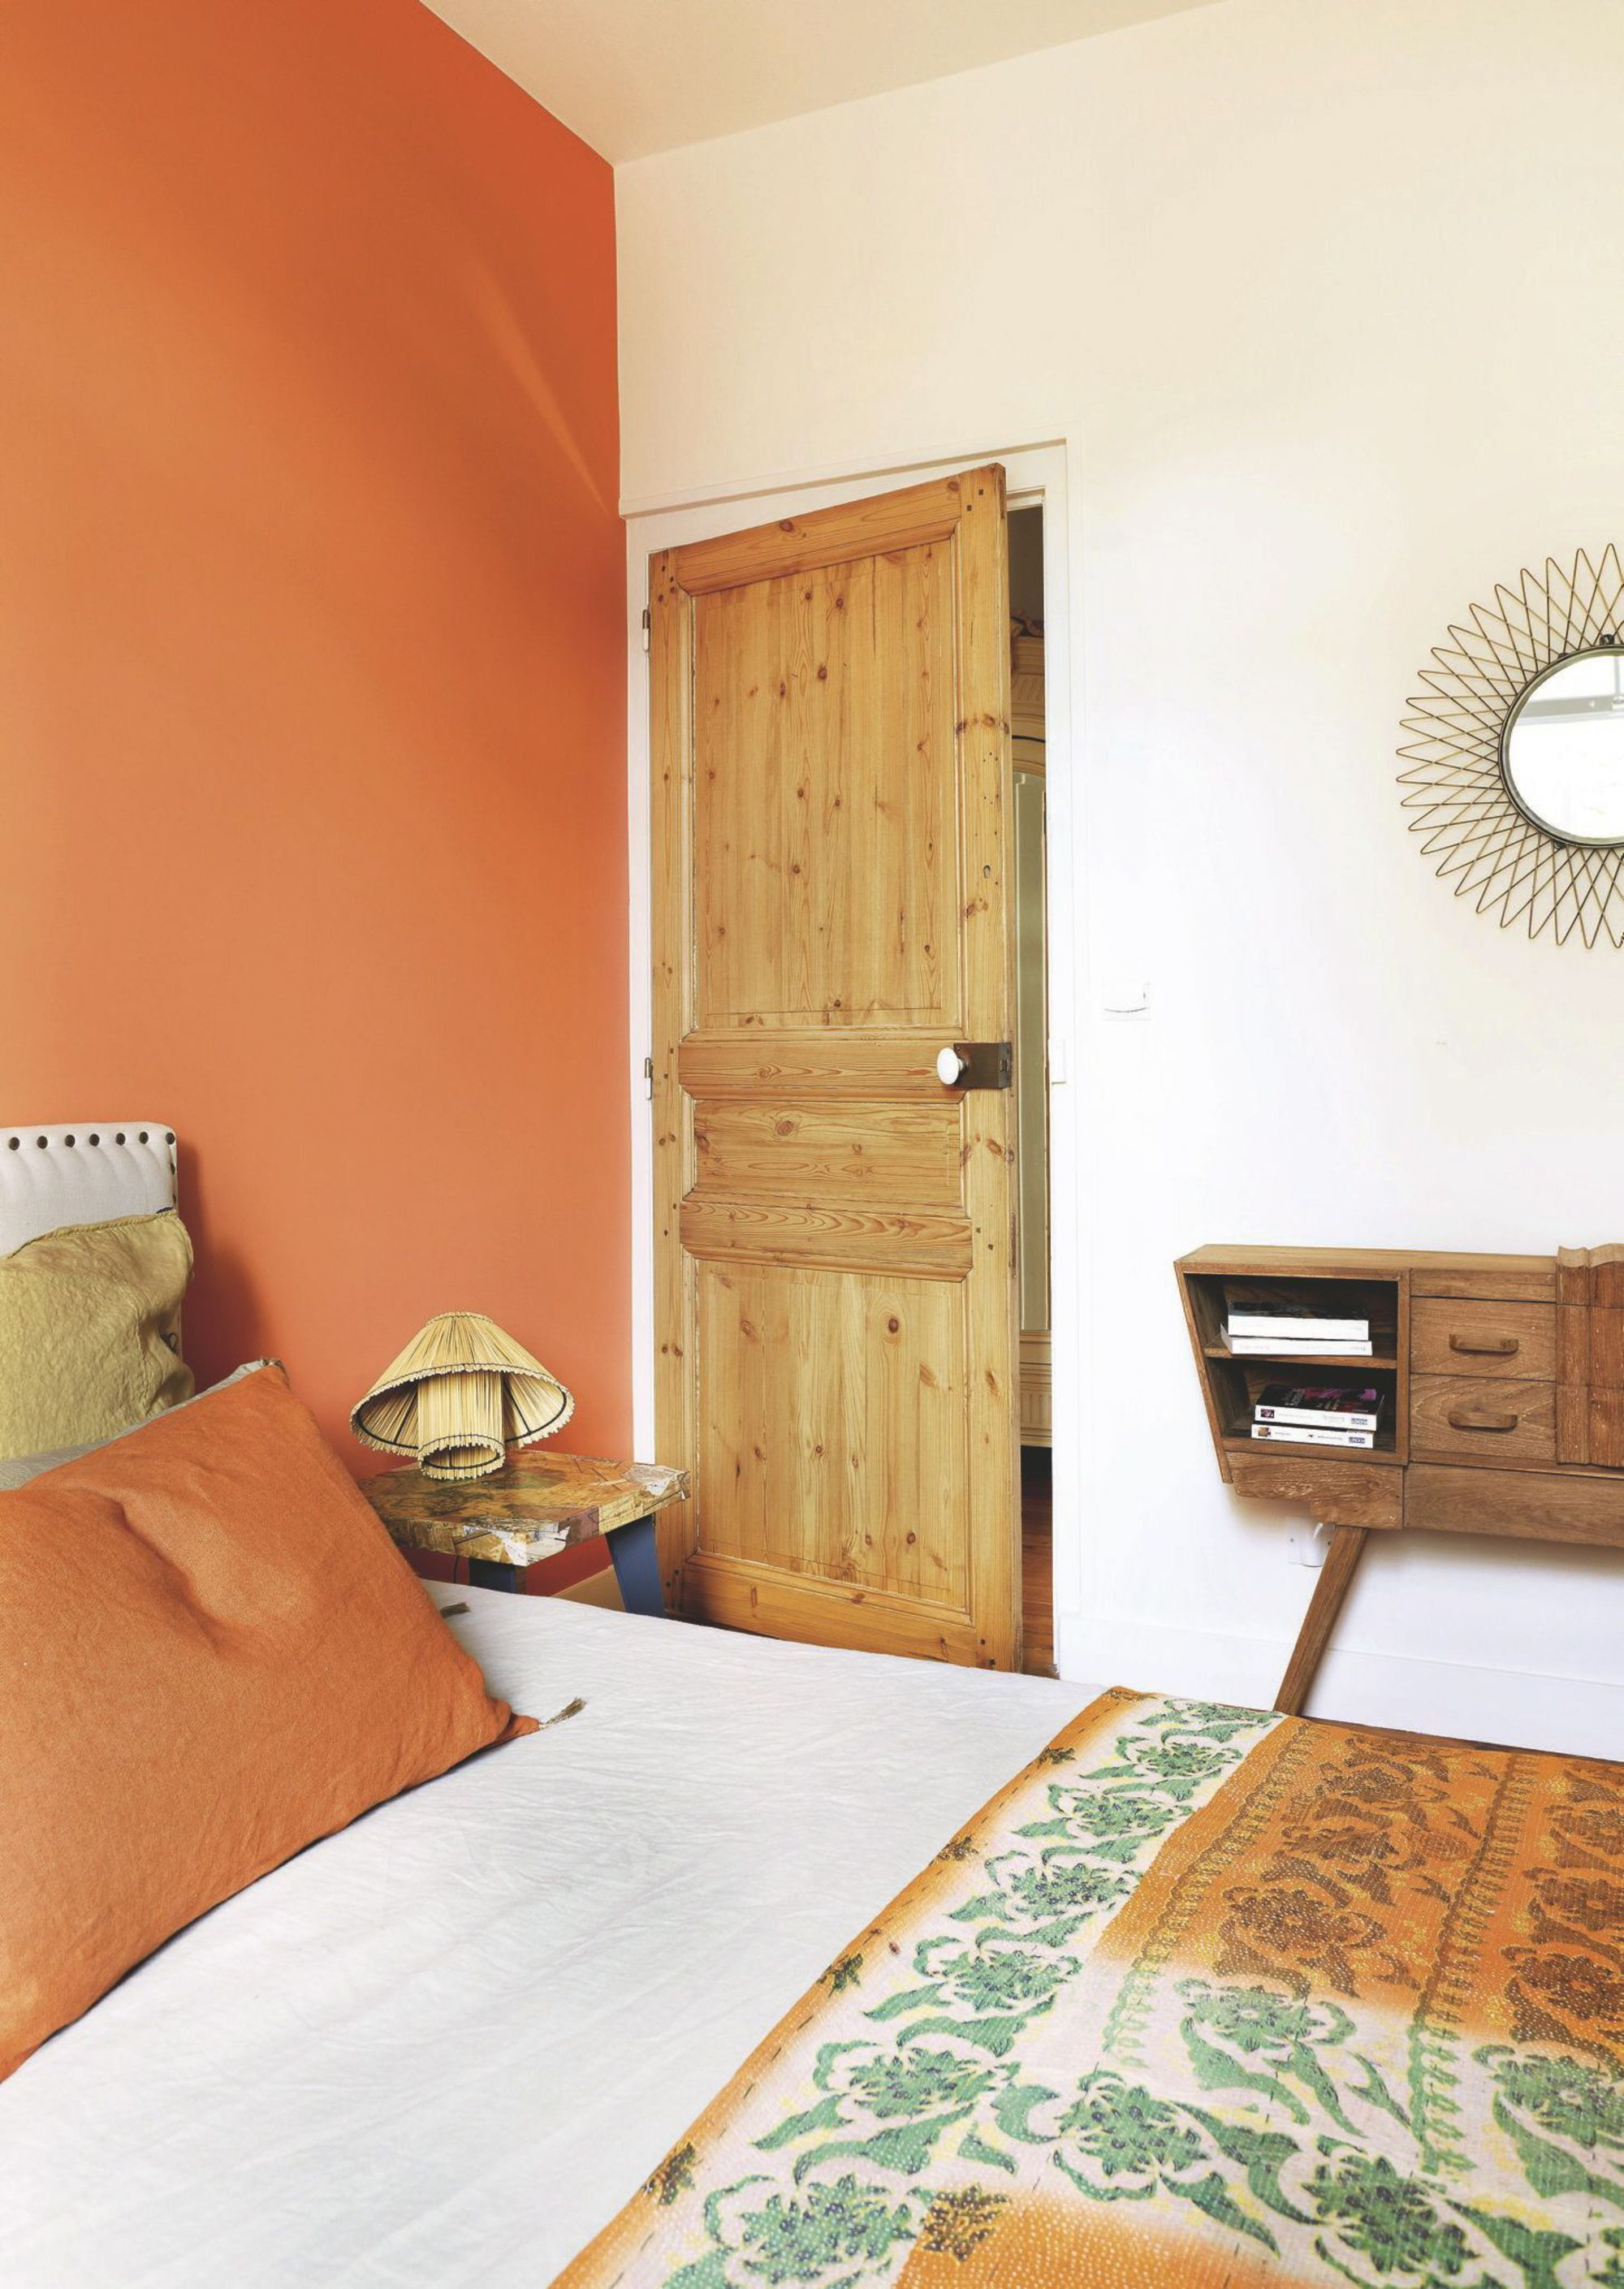 About in 2018 | Orange Inspirations | Pinterest | Maison, Chambre ...